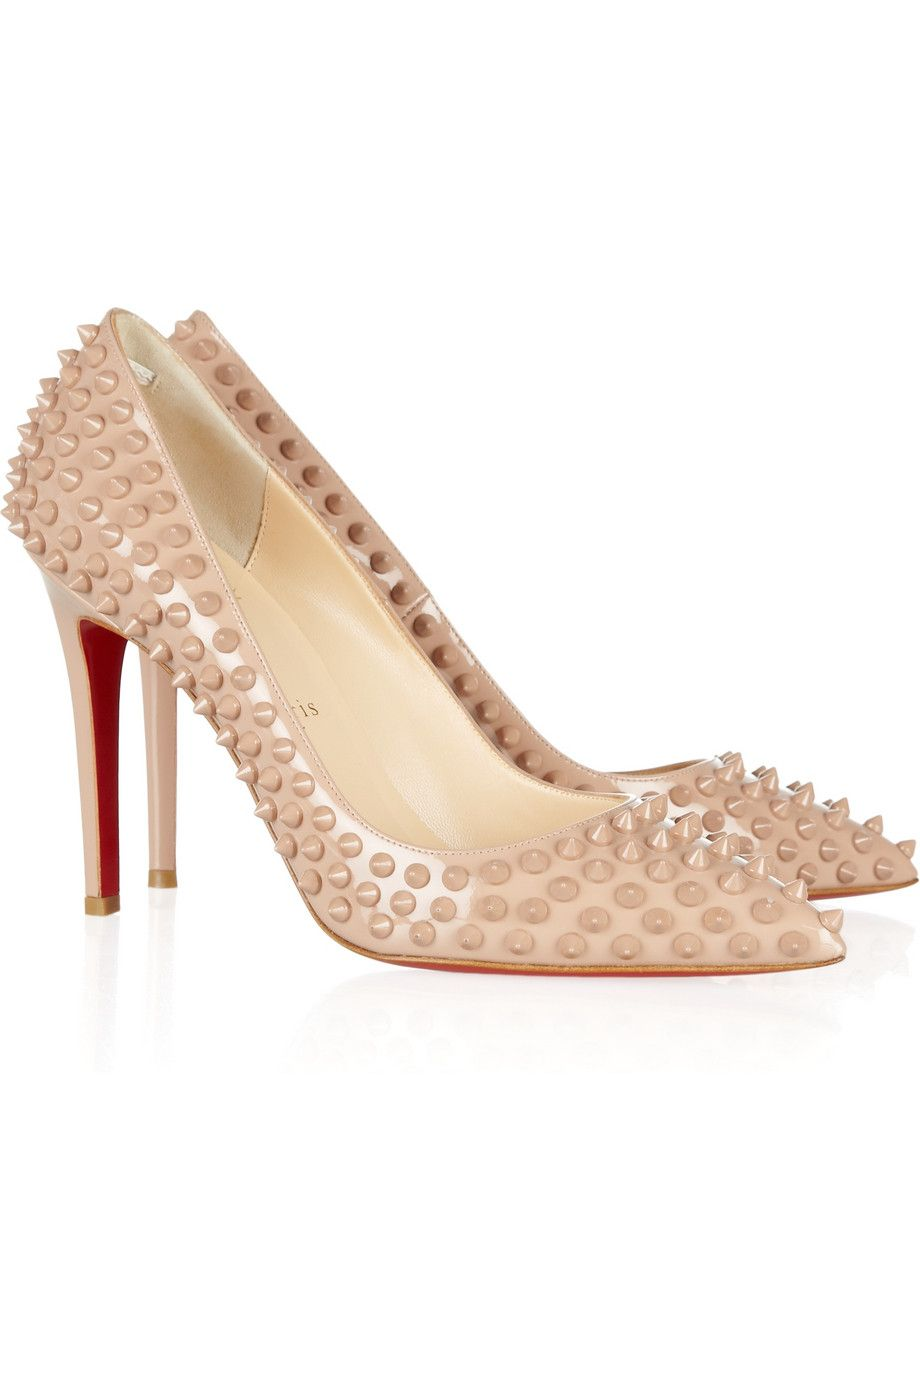 Christian Louboutin Pigalle 100 Spiked Patent Leather Pumps at Net-A-Porter  These edgy nude pumps by Christian Louboutin feature nude spikes and a  pointed